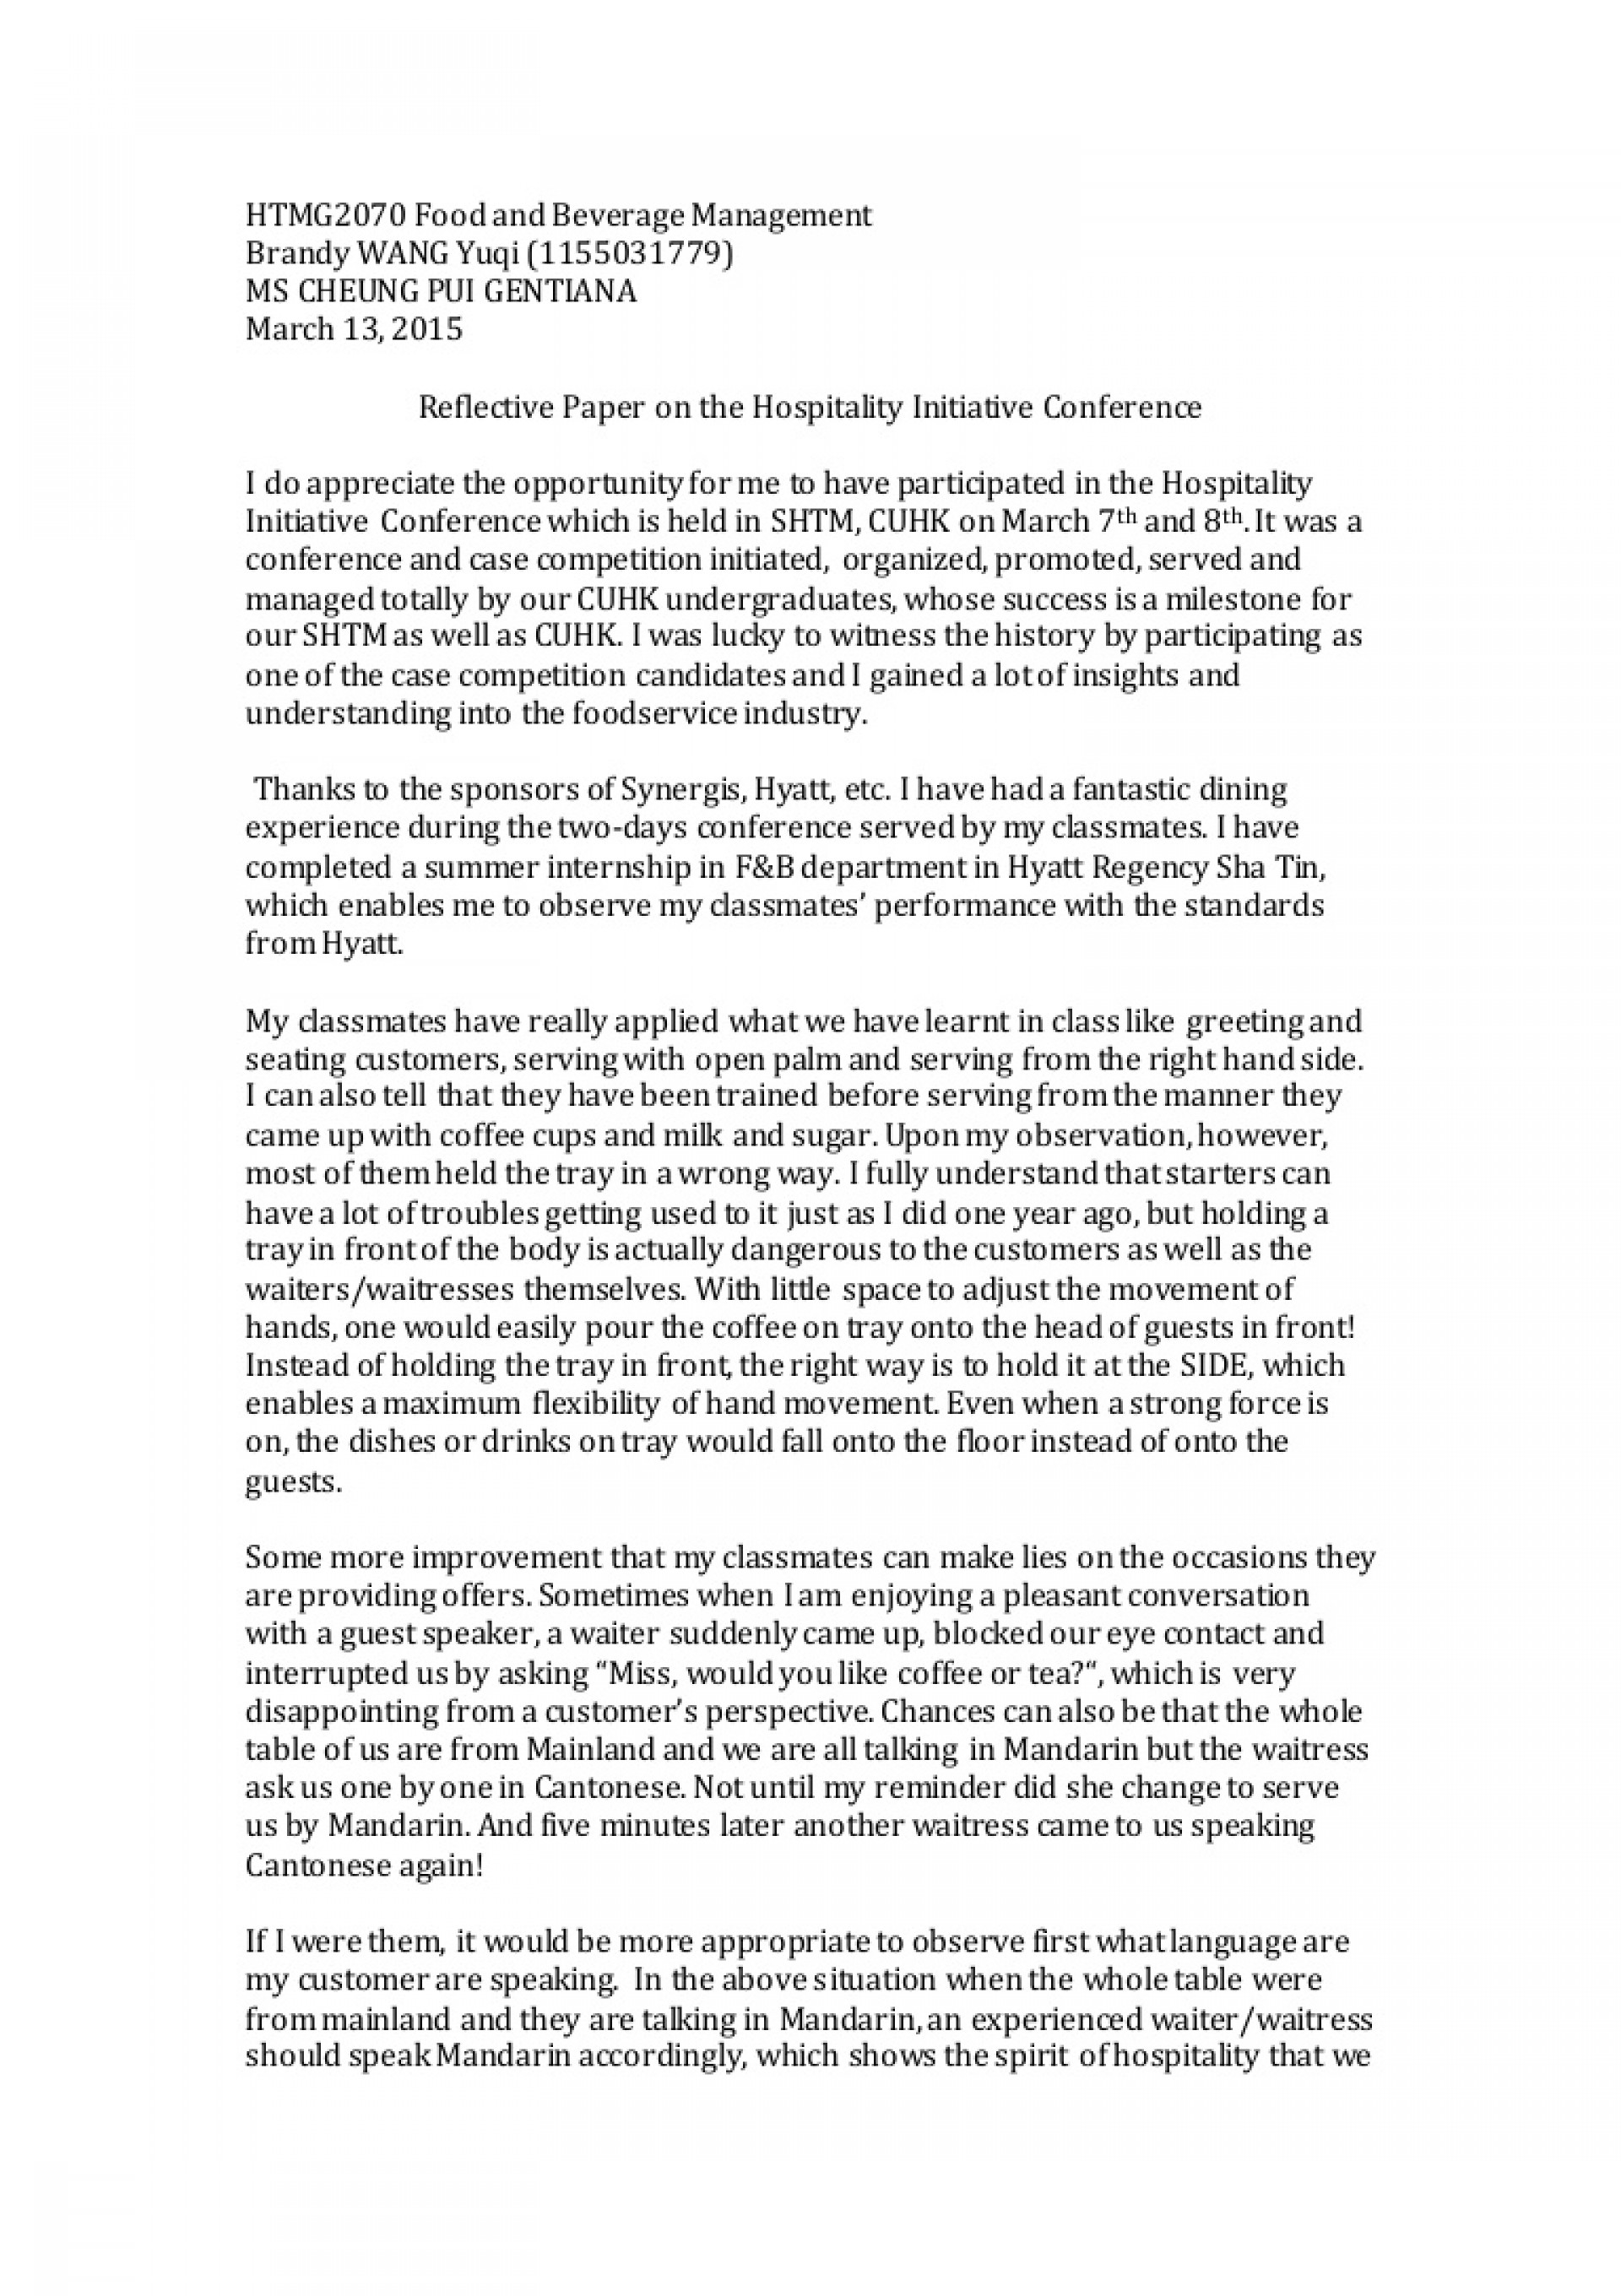 002 Reflectivepaperonthehospitalityinitiativeconference Conversion Gate01 Thumbnail Essay Example Rare Internship Expectations Sample Format Layout 1920